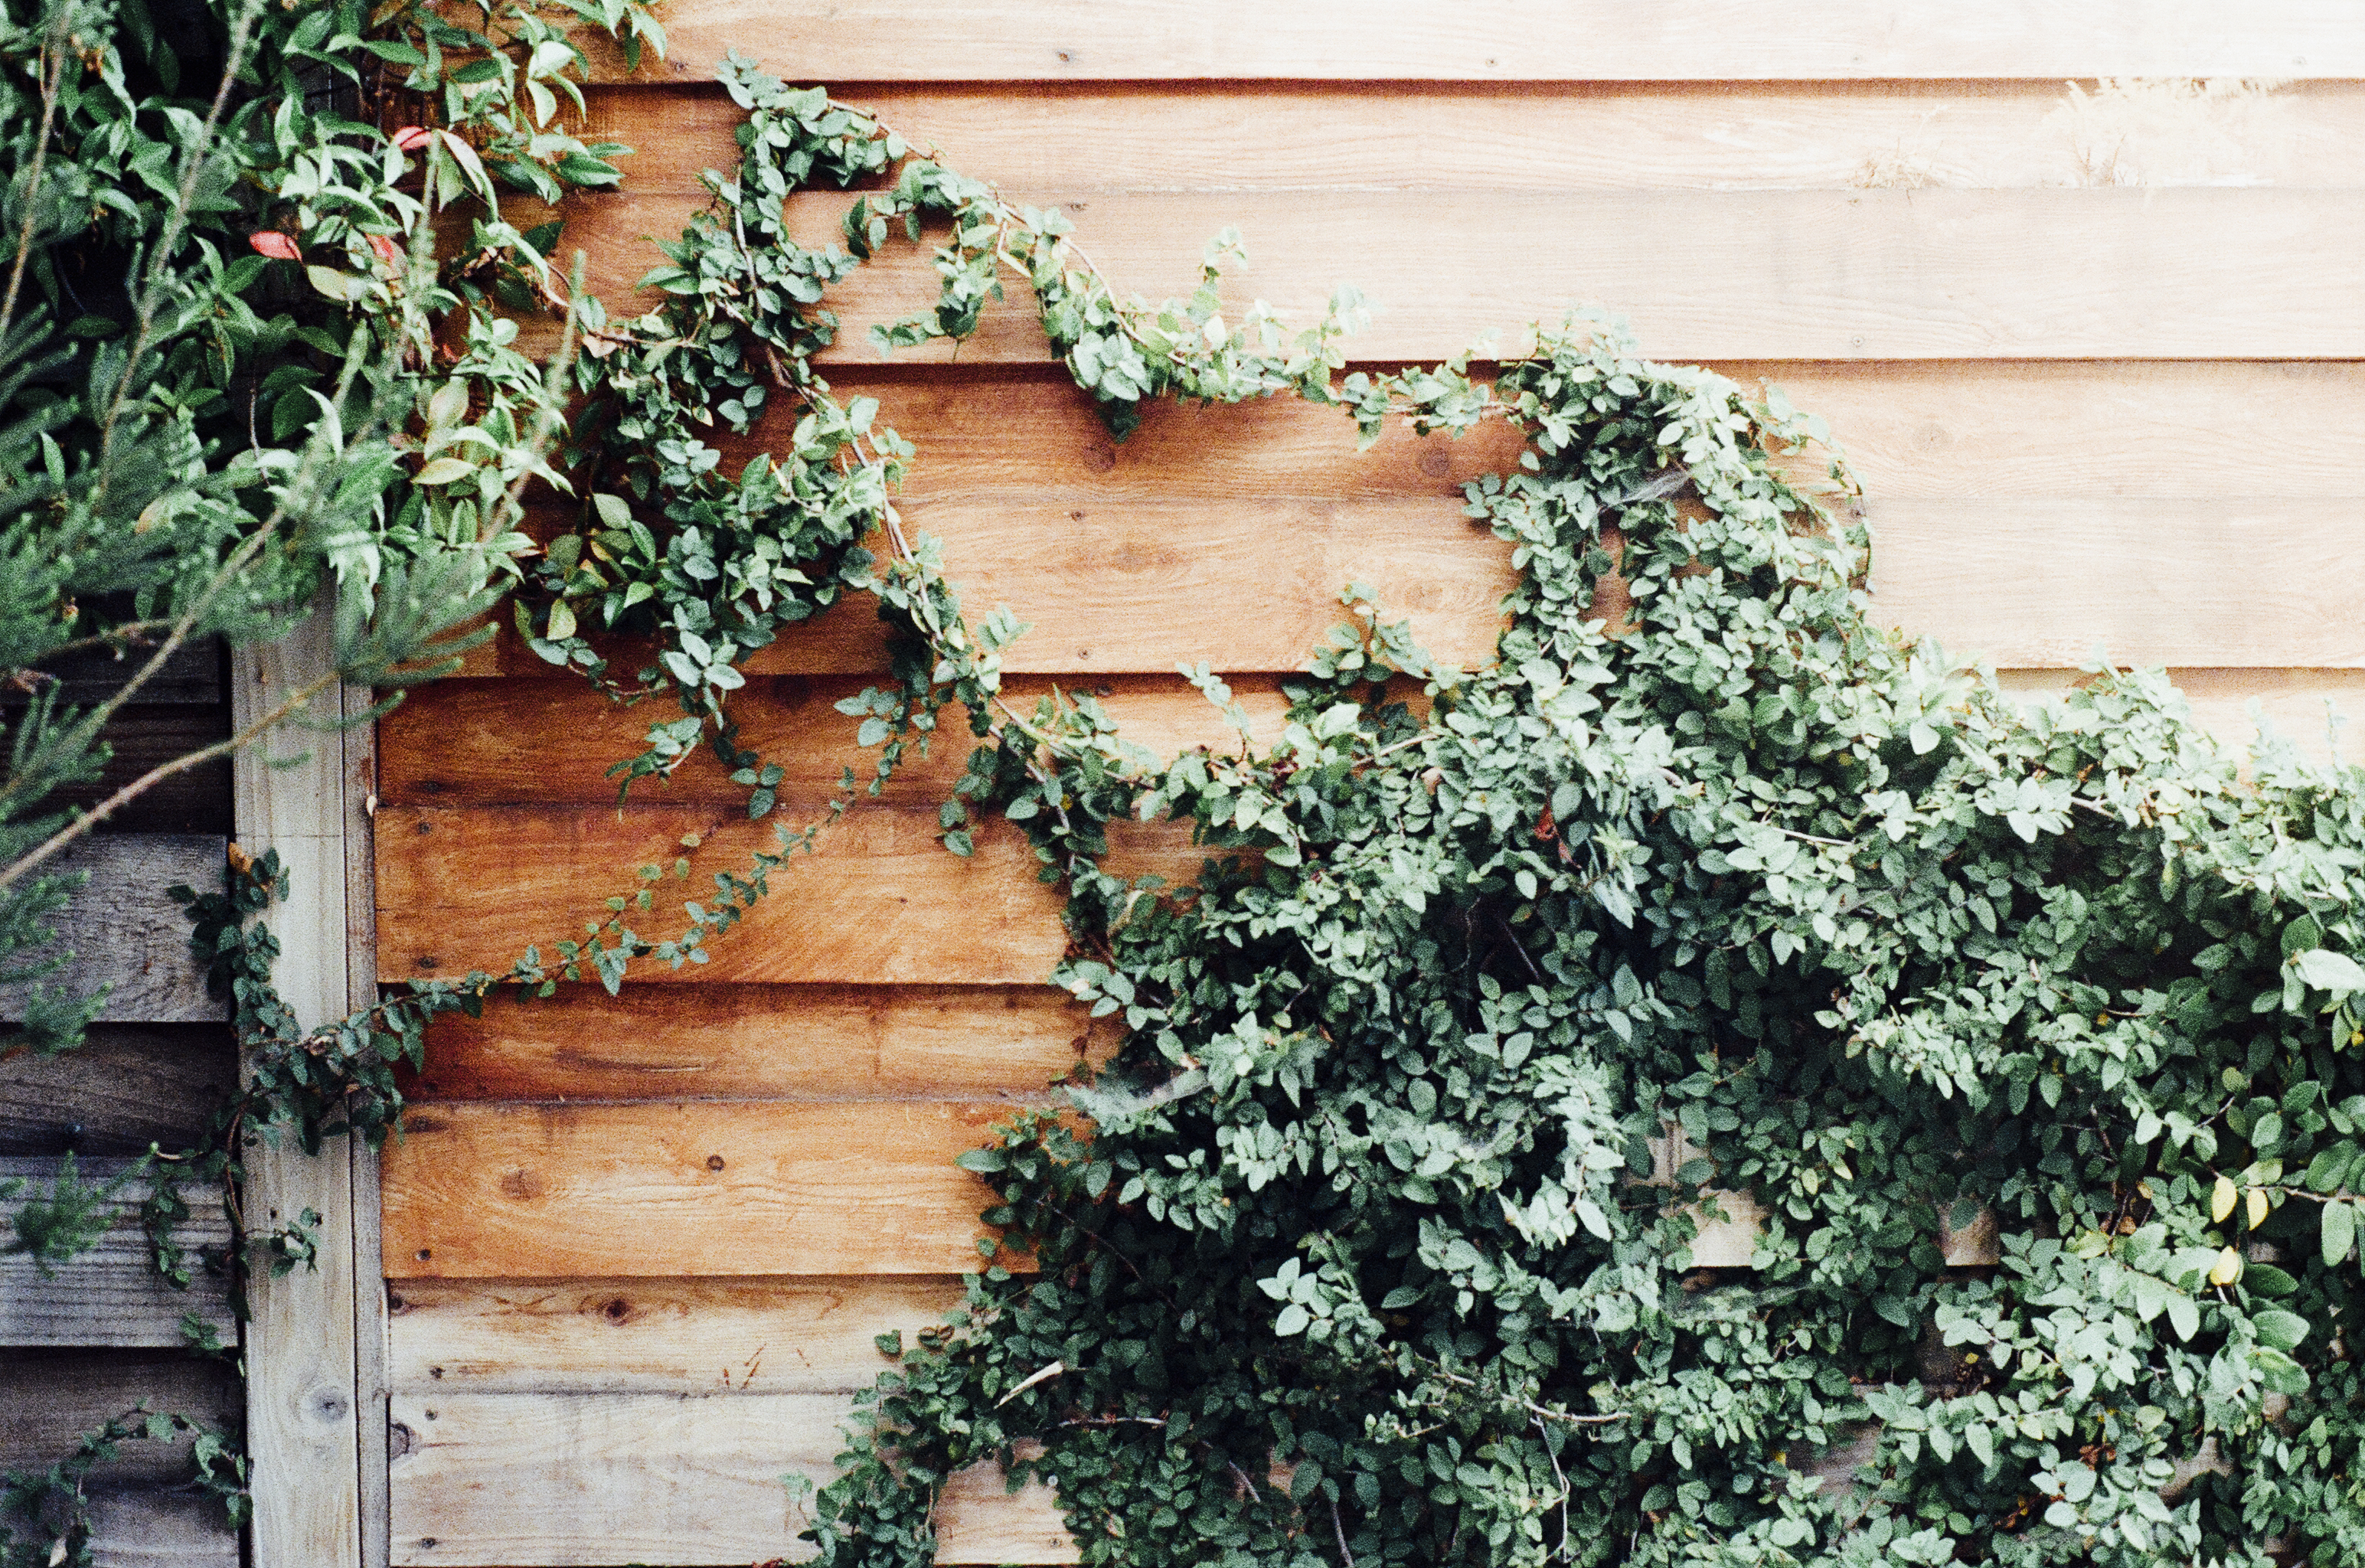 fence-overgrown-ivy